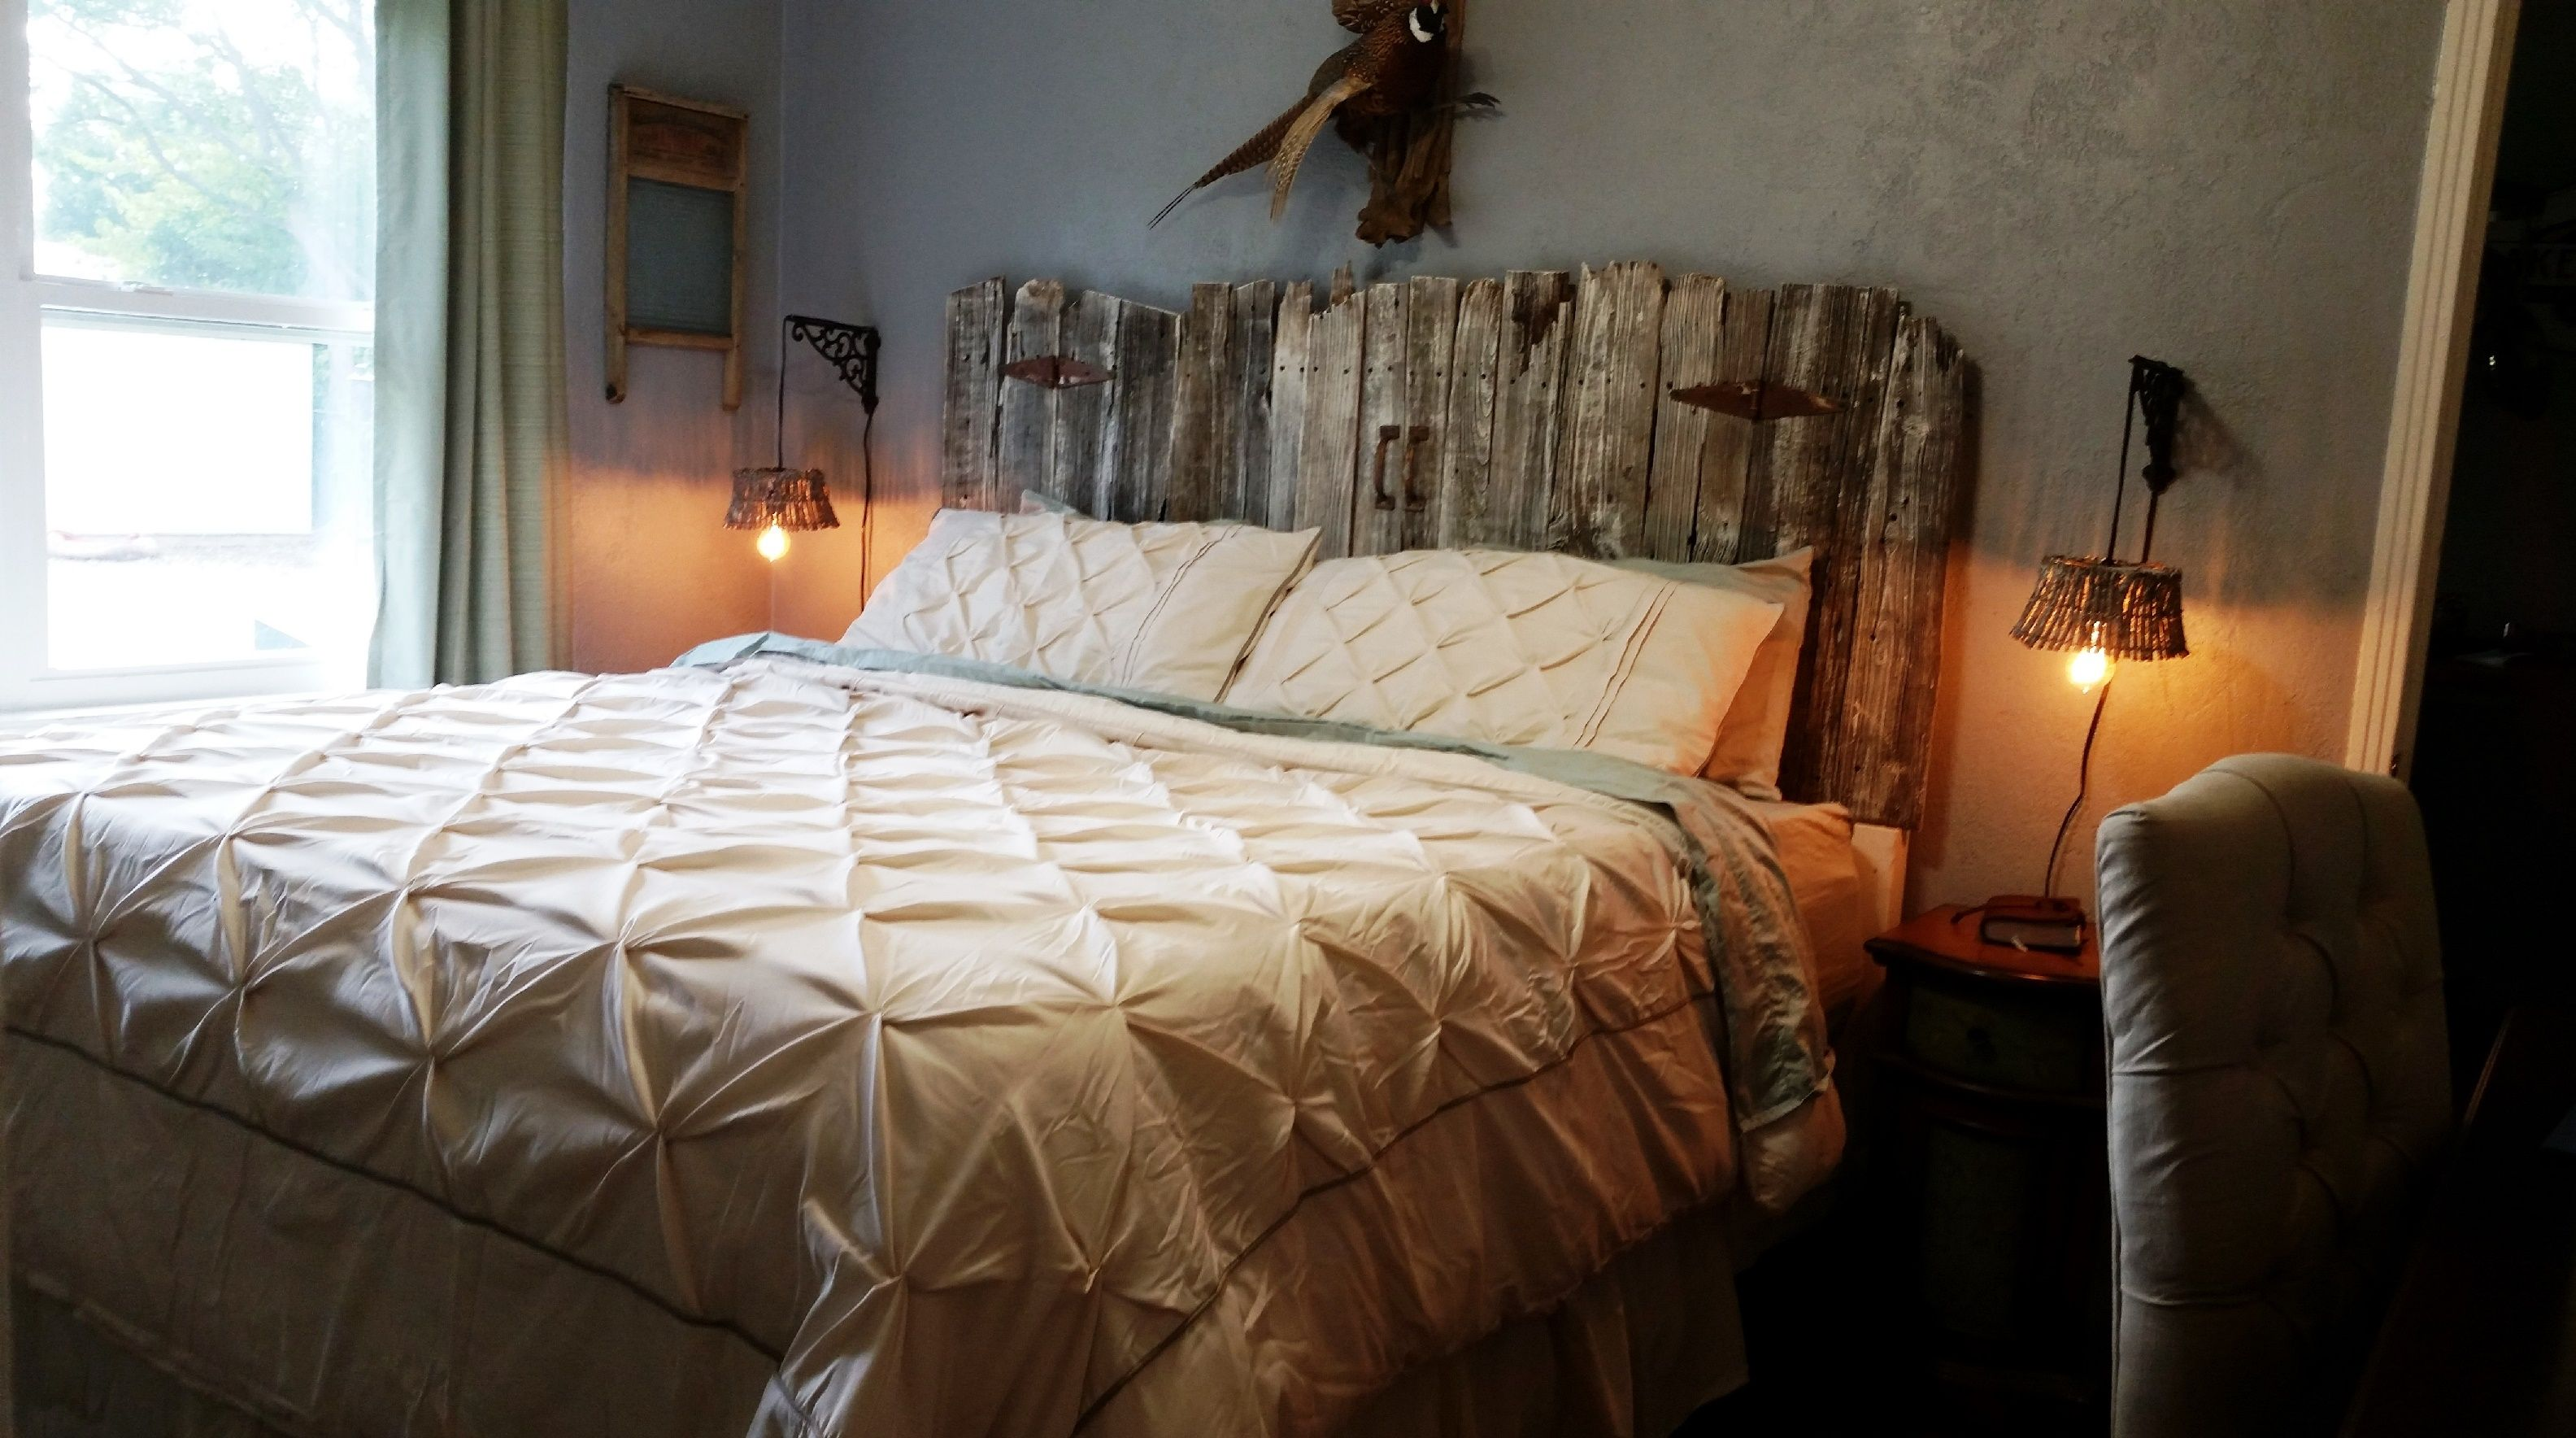 Vintage Headboards takes real barn wood and creates one of kind